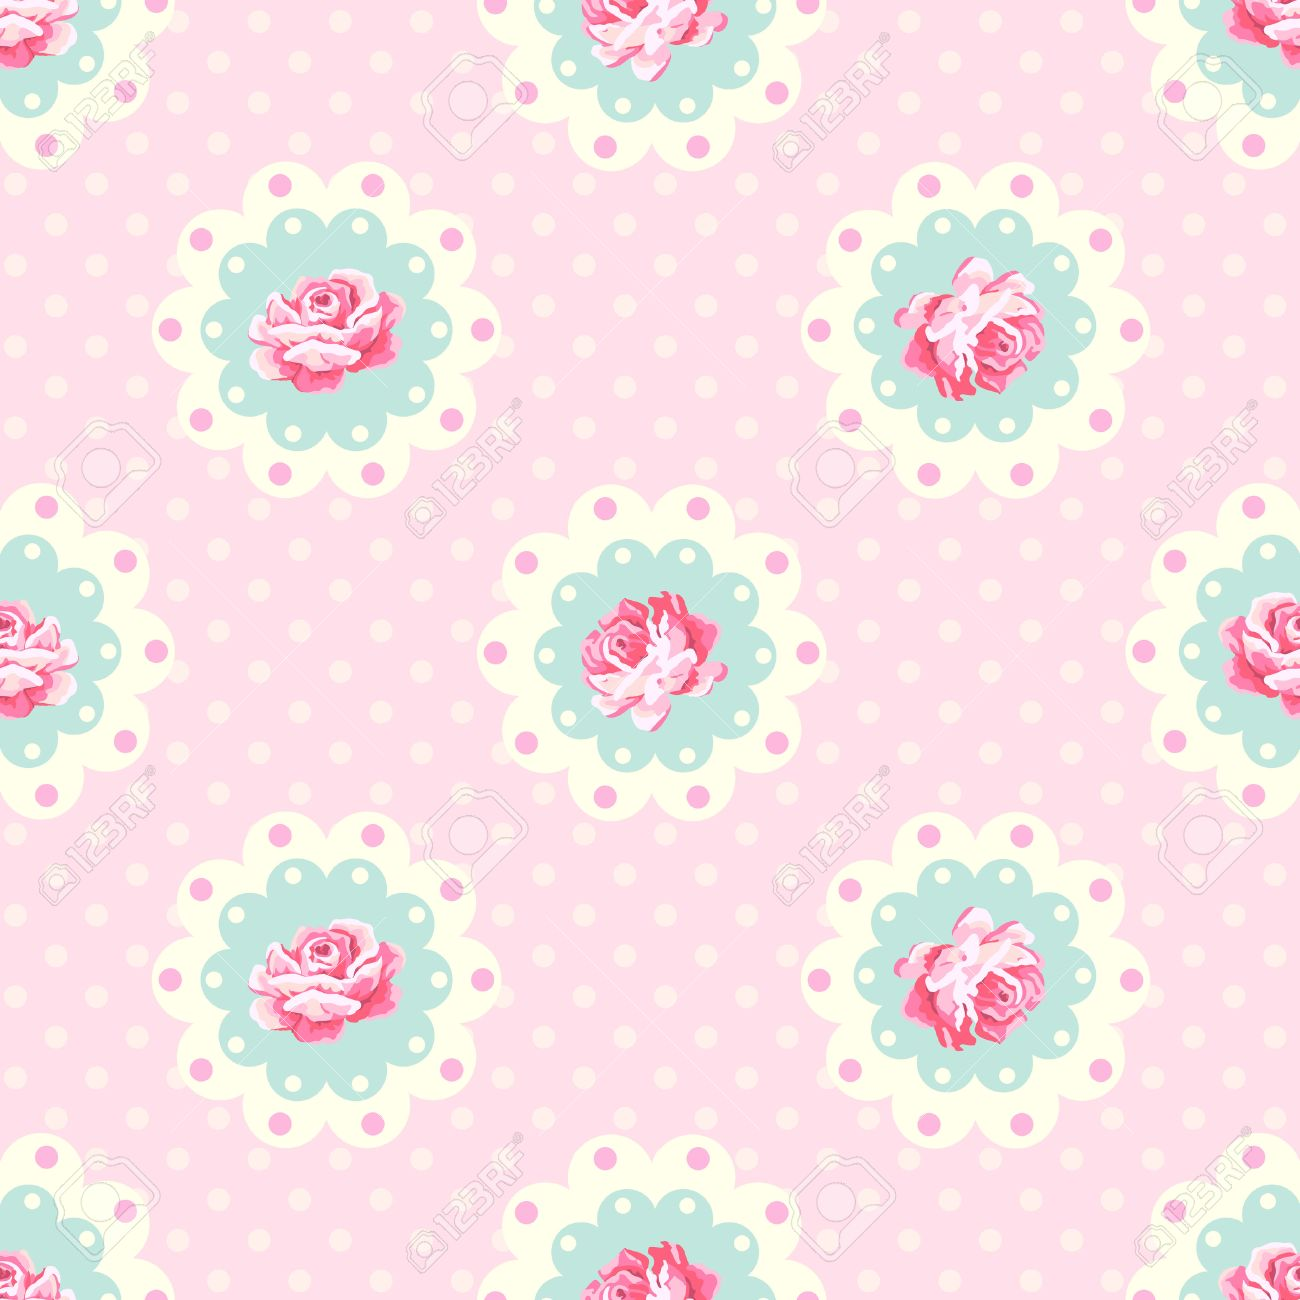 Vintage rose pattern. Shabby chic style vector background - 57172205